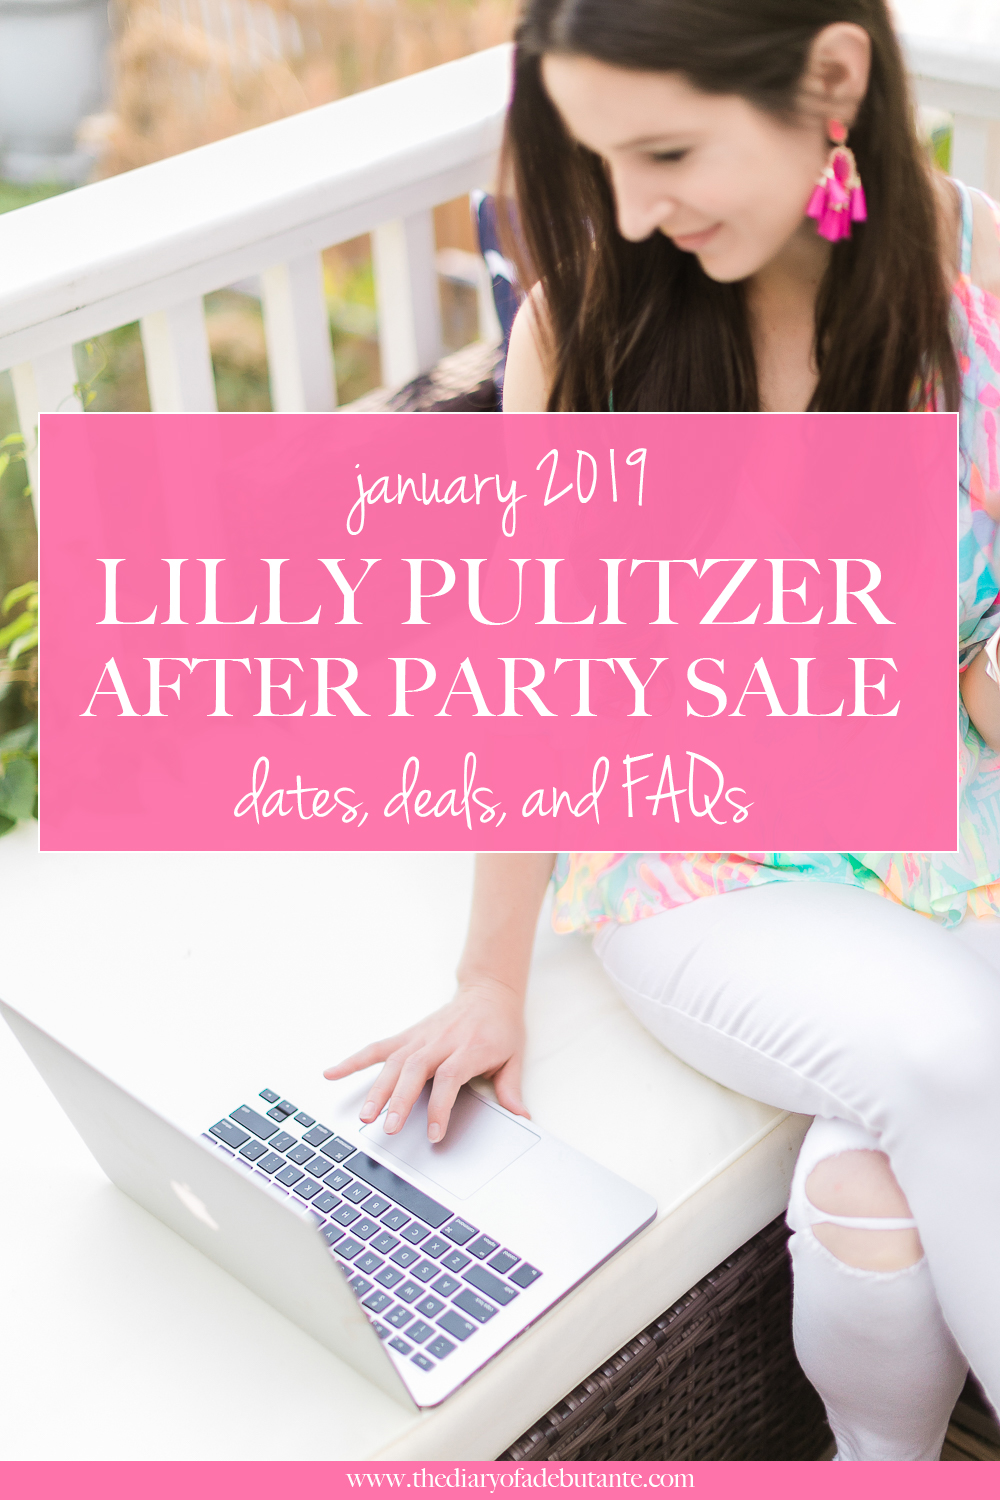 Lilly Pulitzer After Party Sale January 2019 Dates, Deals, and FAQs by preppy fashion and southern lifestyle blogger Stephanie Ziajka from Diary of a Debutante, Lilly Pulitzer After Party Sale prices, Lilly Pulitzer After Party Sale dates, Lilly Pulitzer Annual Sale